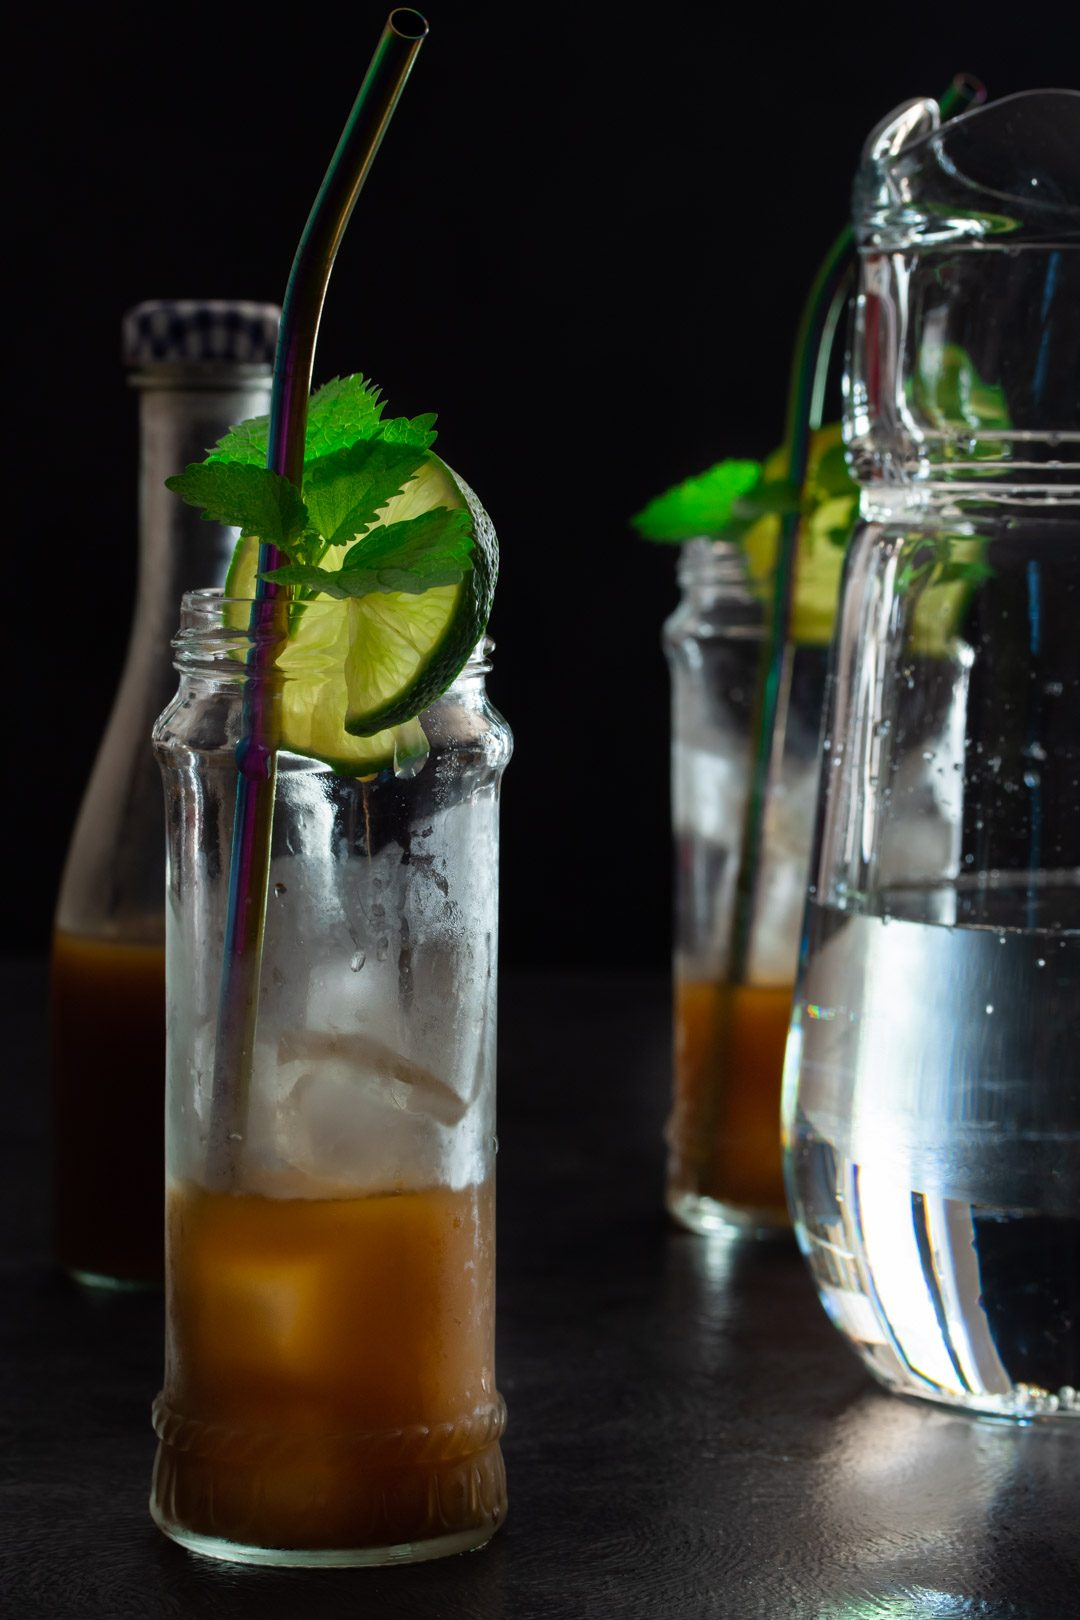 Ginger lime shrub syrup drinking vinegar